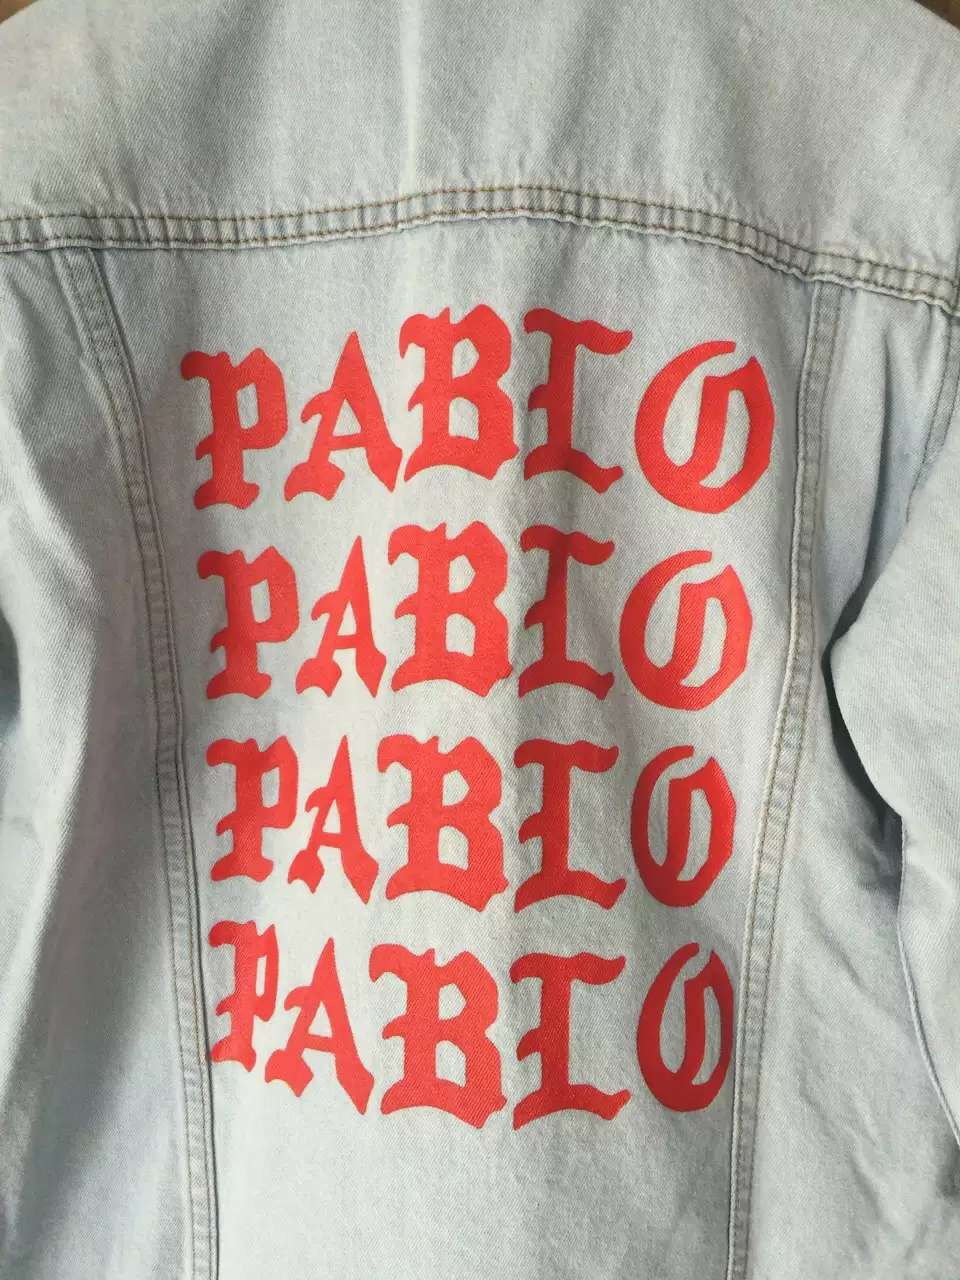 HTB1j S4NXXXXXcbXVXXq6xXFXXXI - I Feel Like Pablo Denim Jacket Season 3 Kanye West Pablo Jeans Jacket PTC 03